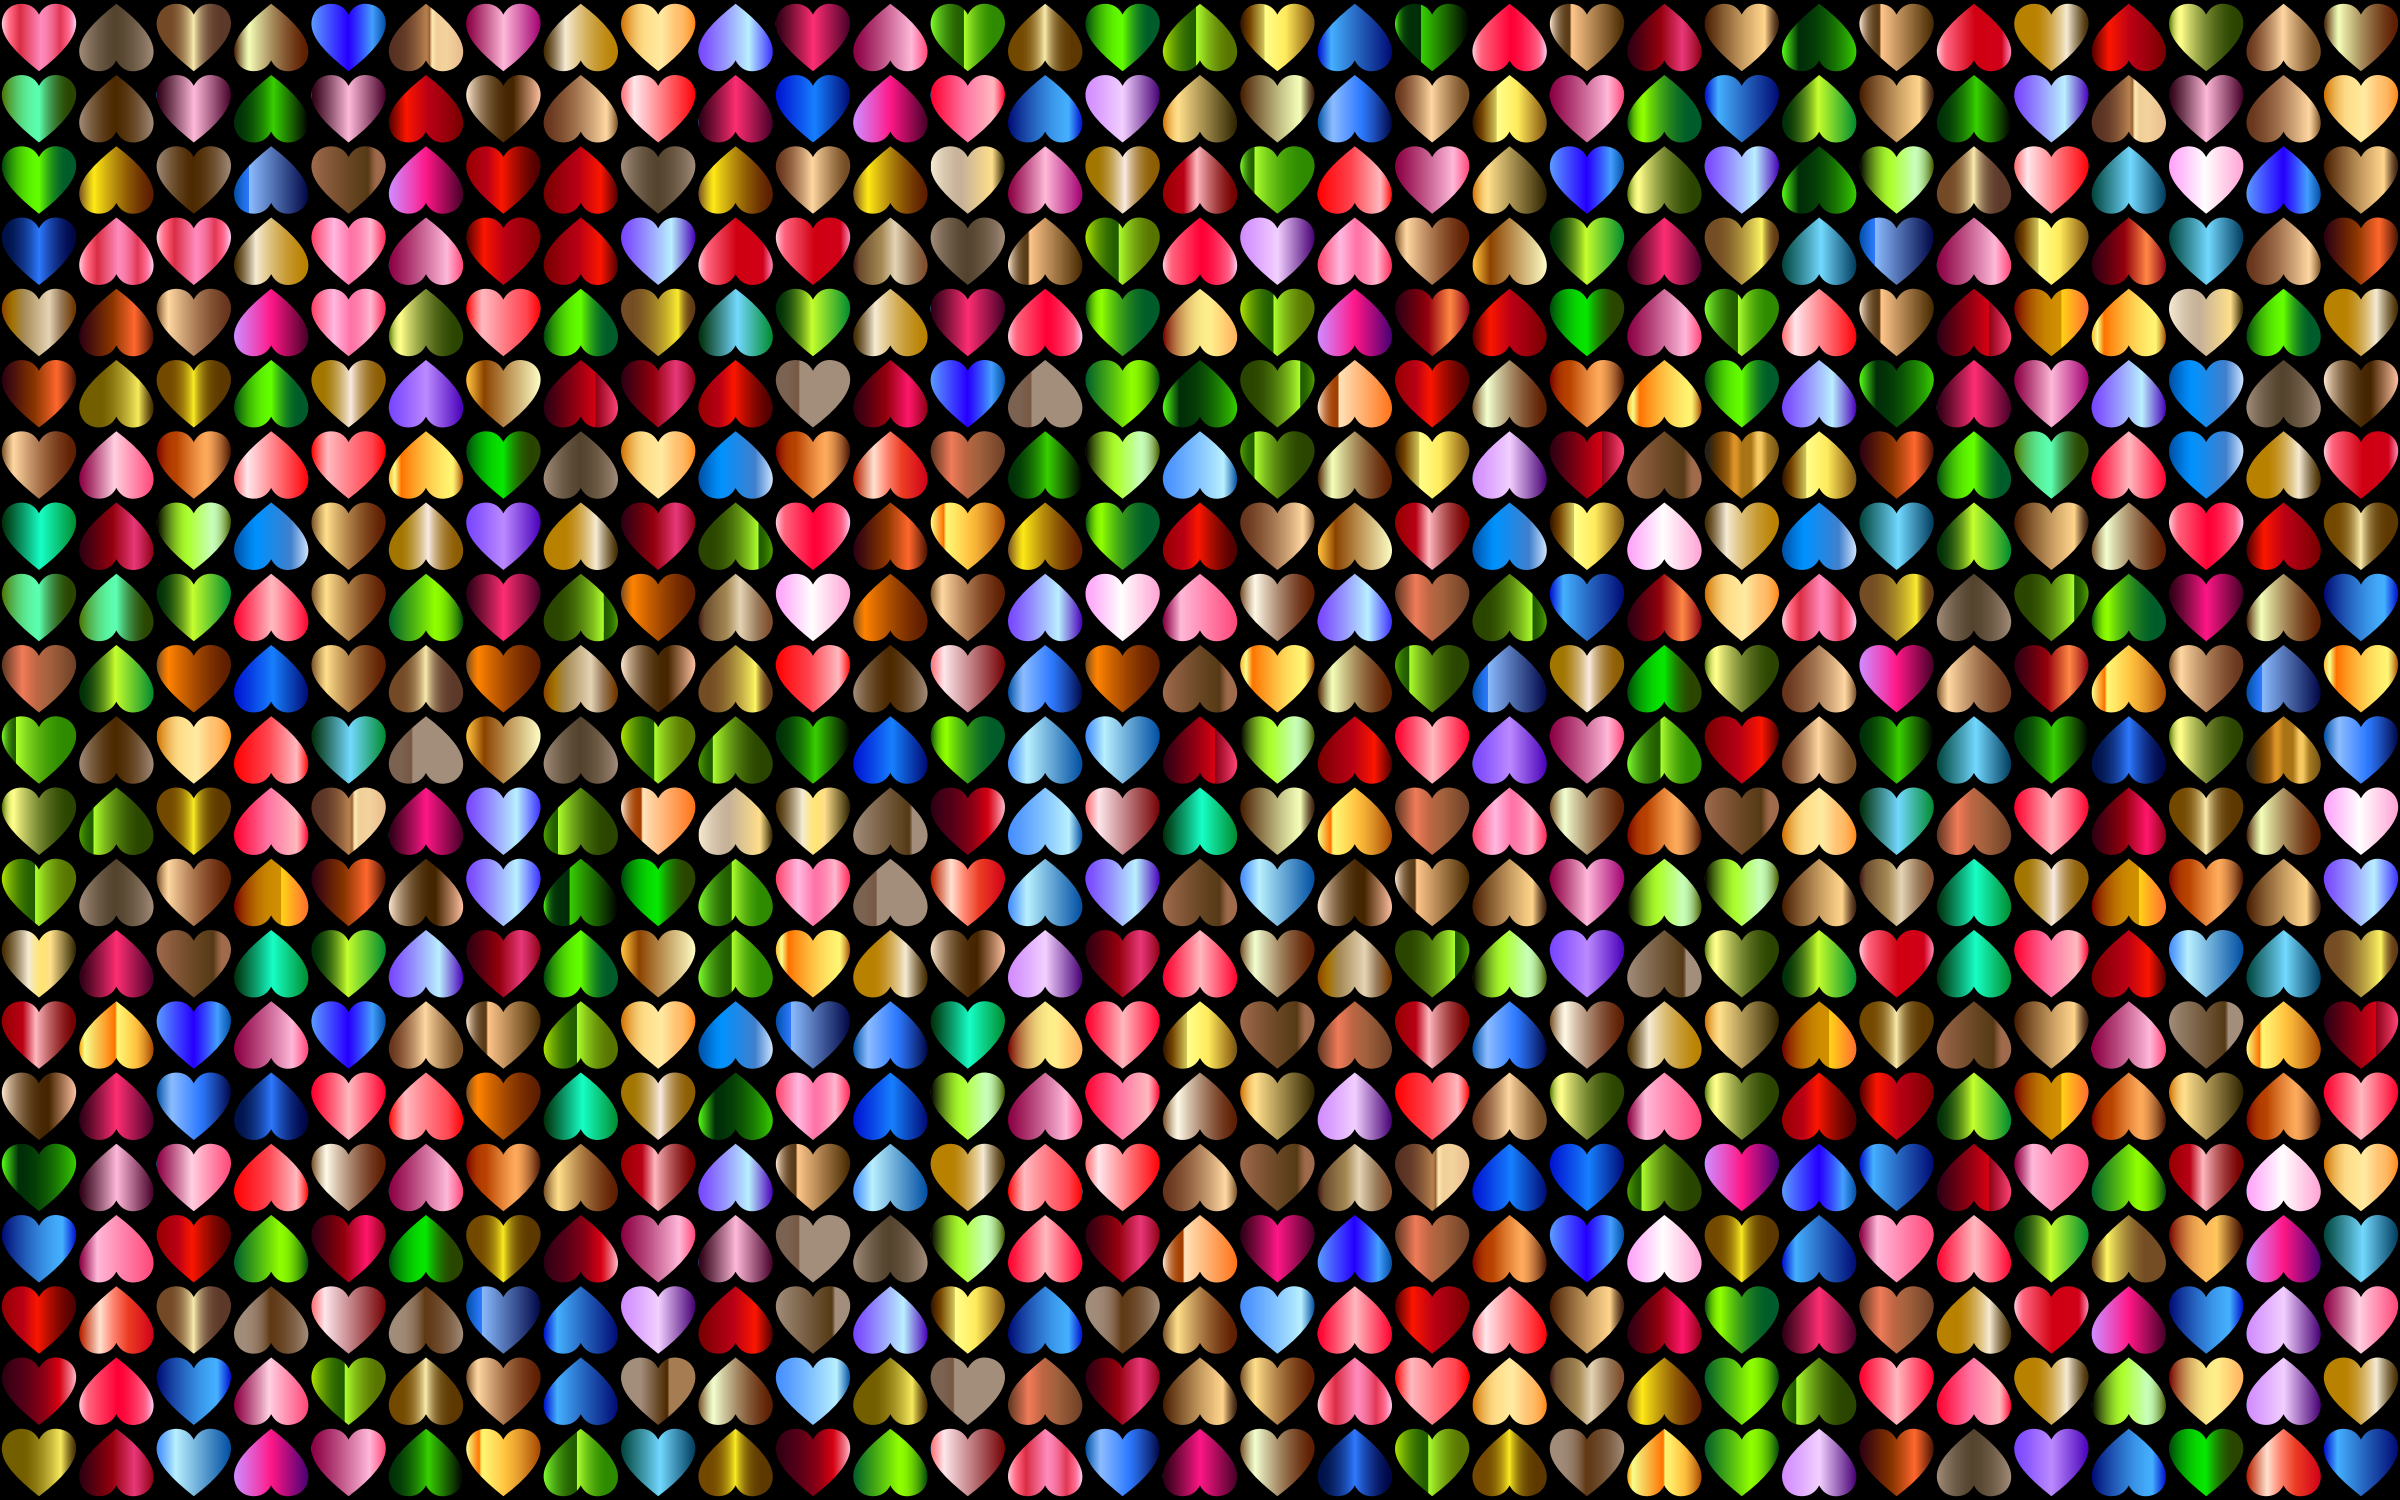 Prismatic Alternating Hearts Pattern Background 6 by GDJ